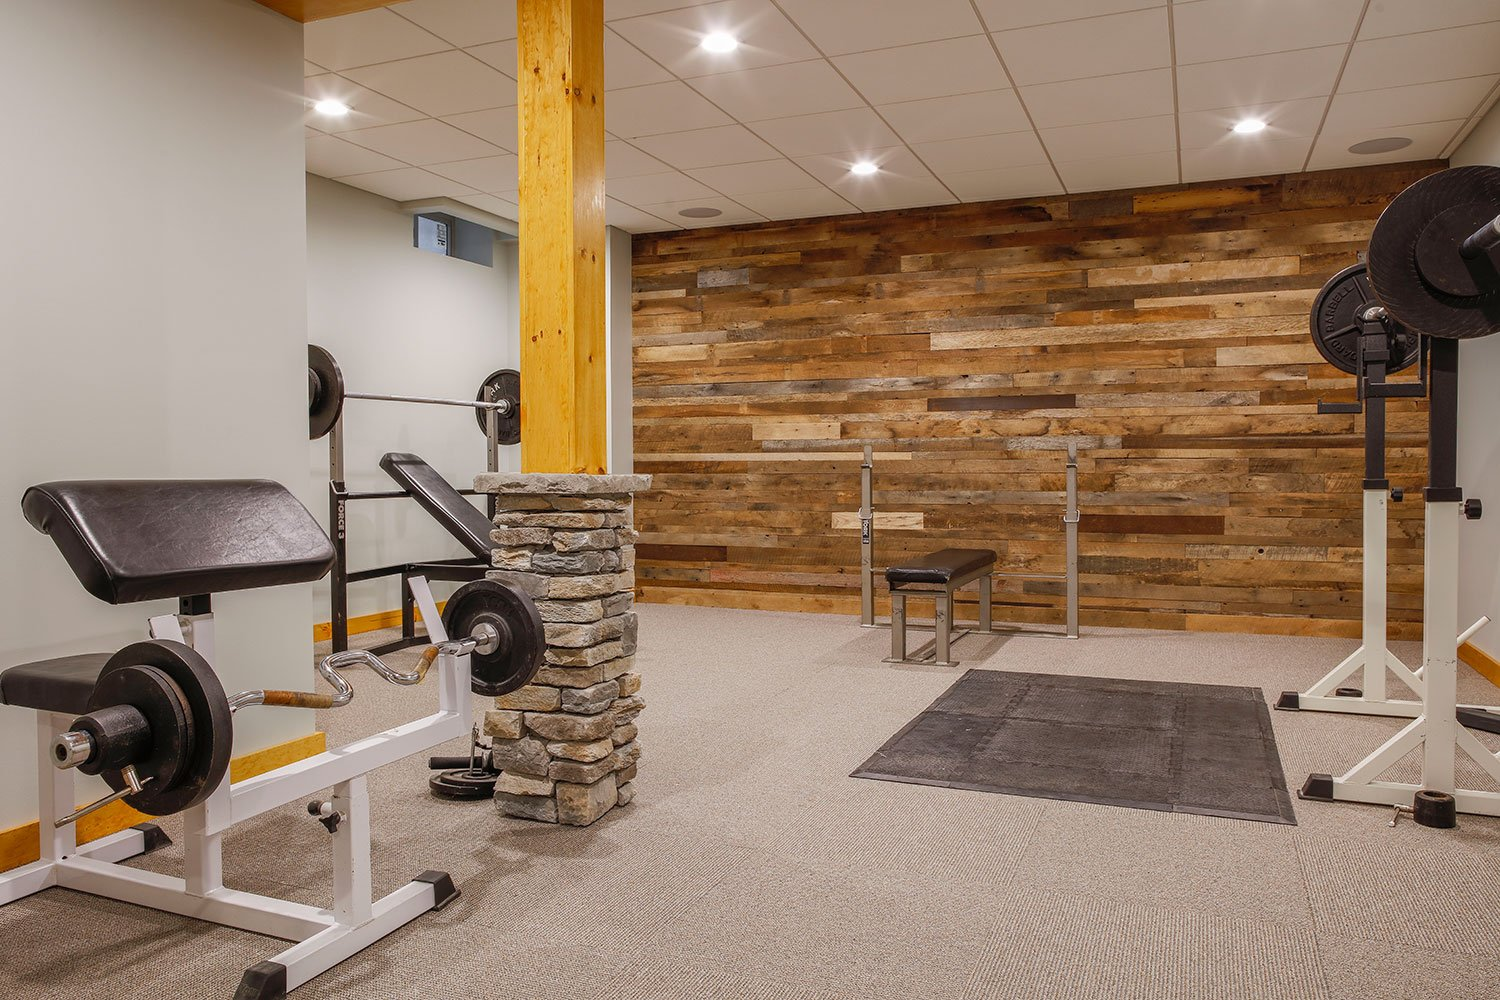 Home gym - yoga? cardio? lifting? It's all possible!